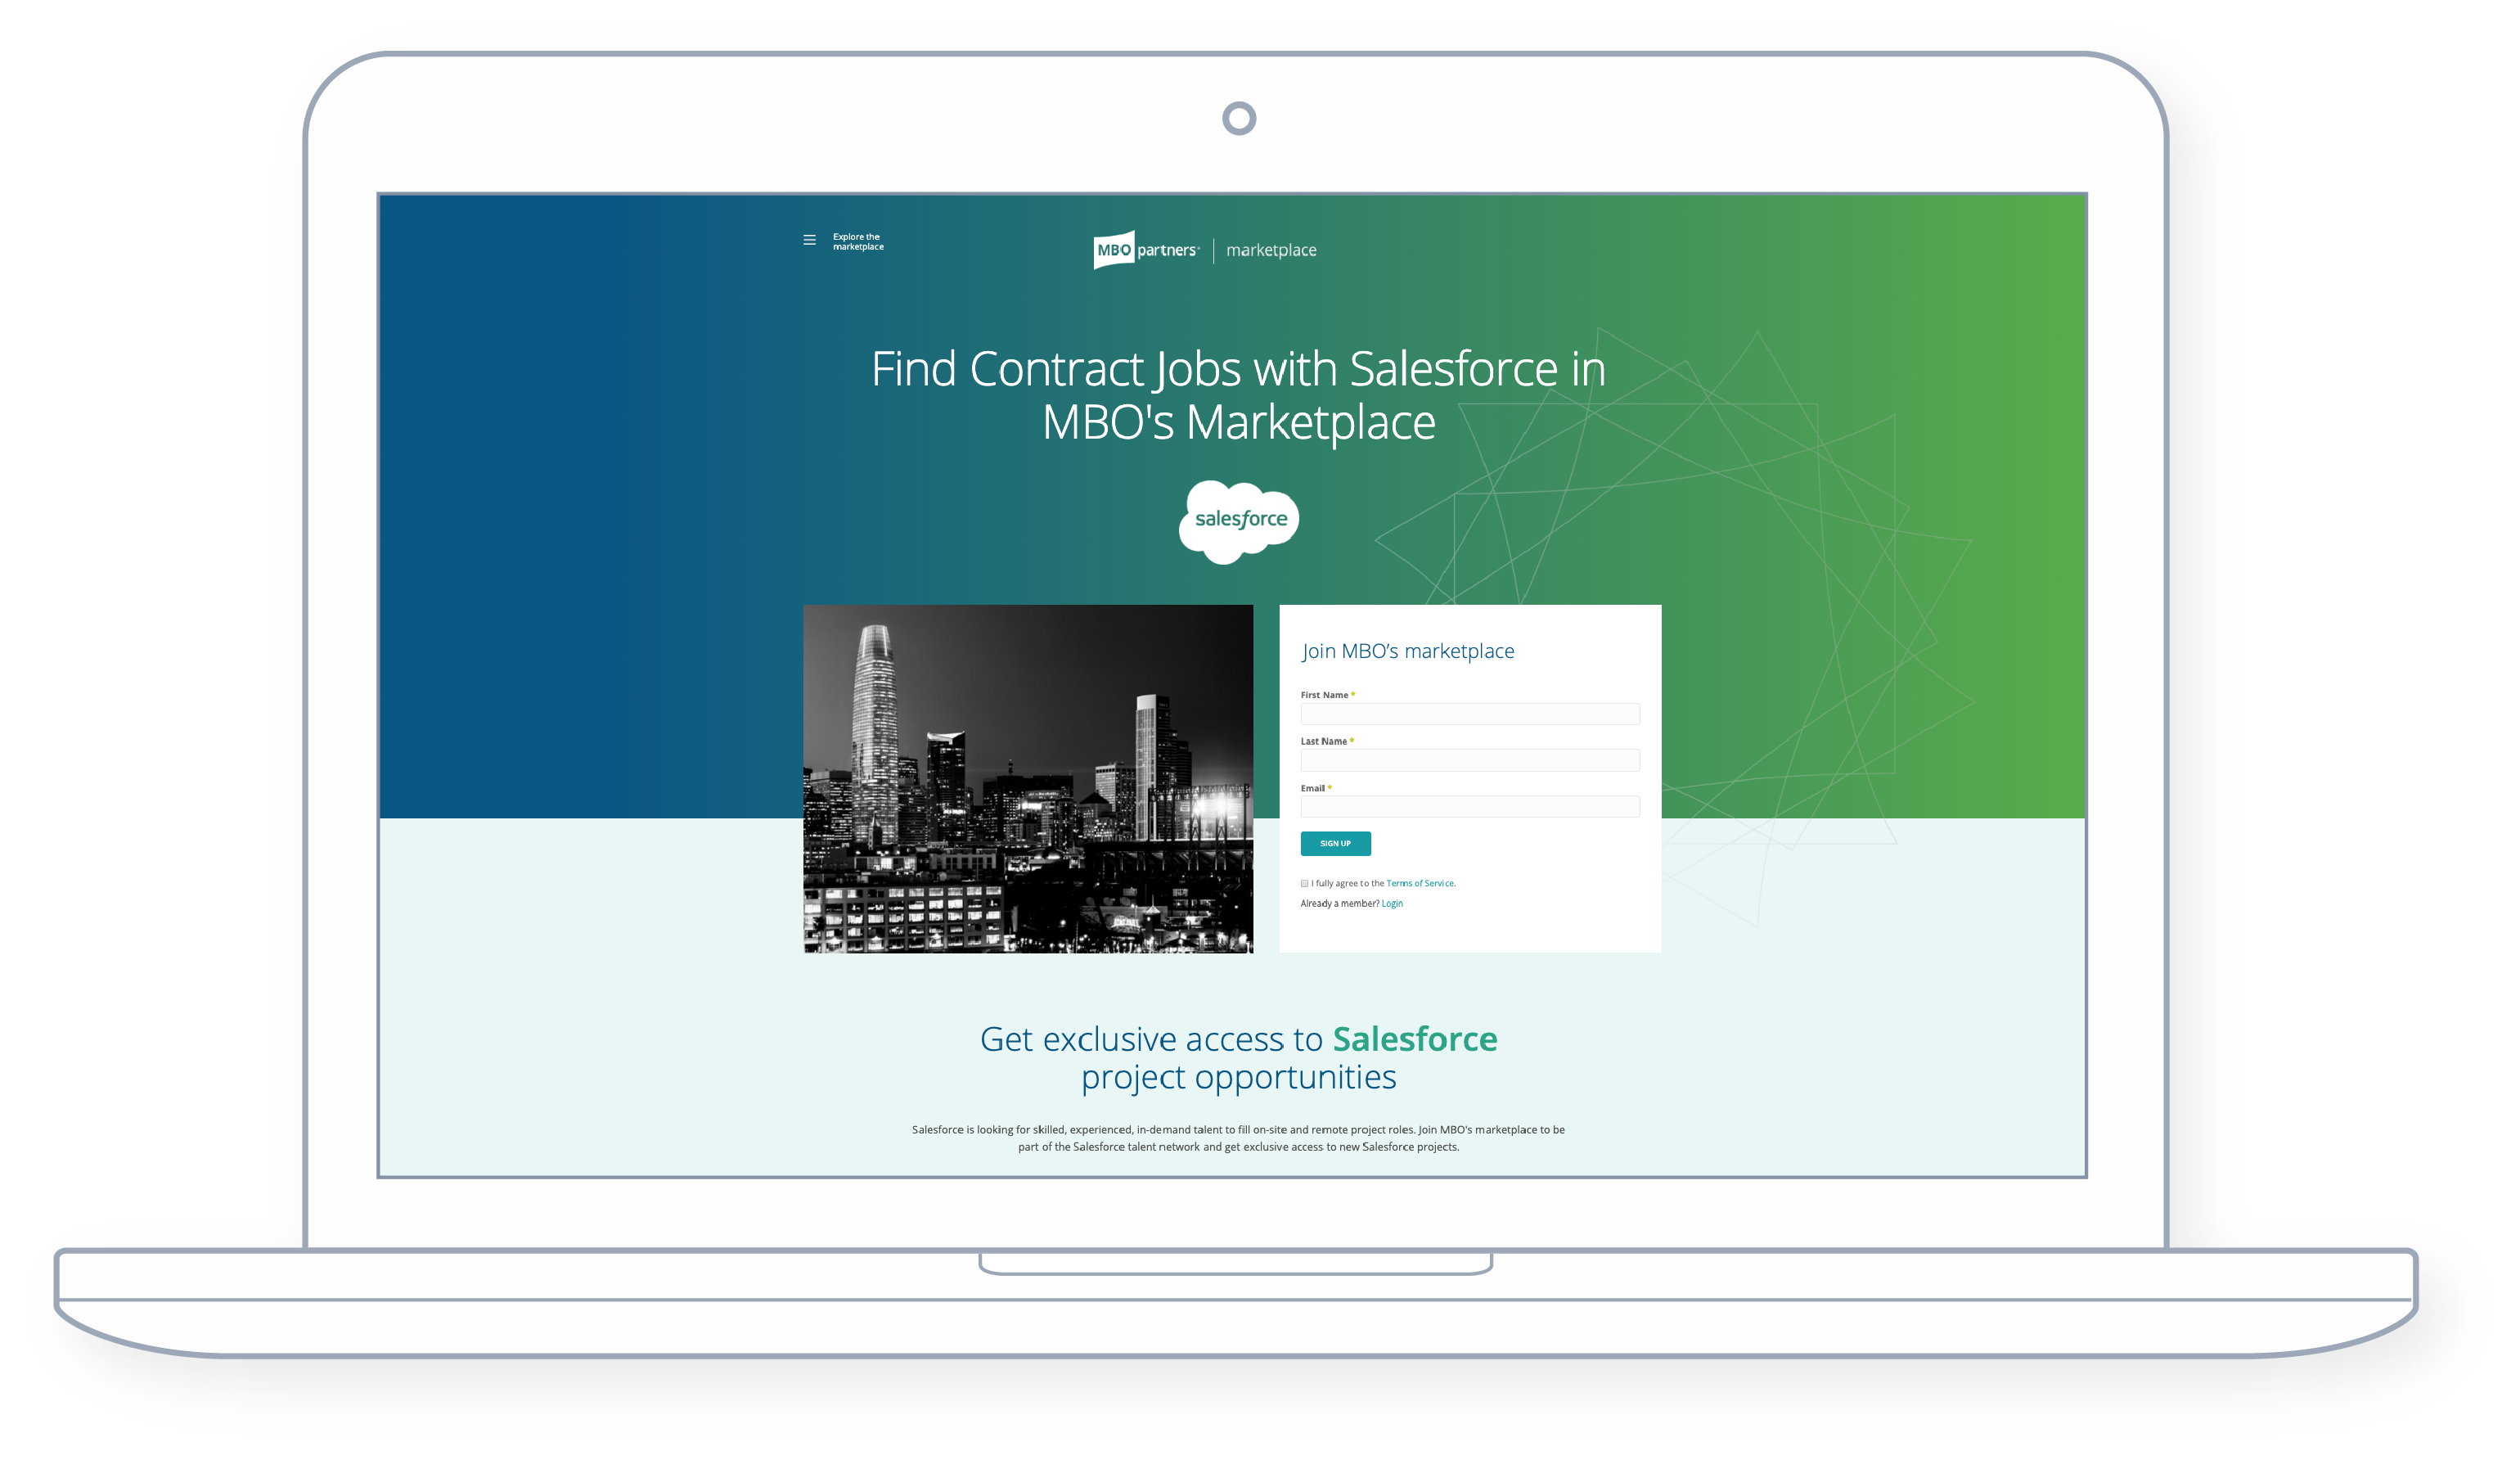 Salesforce marketplace page on laptop